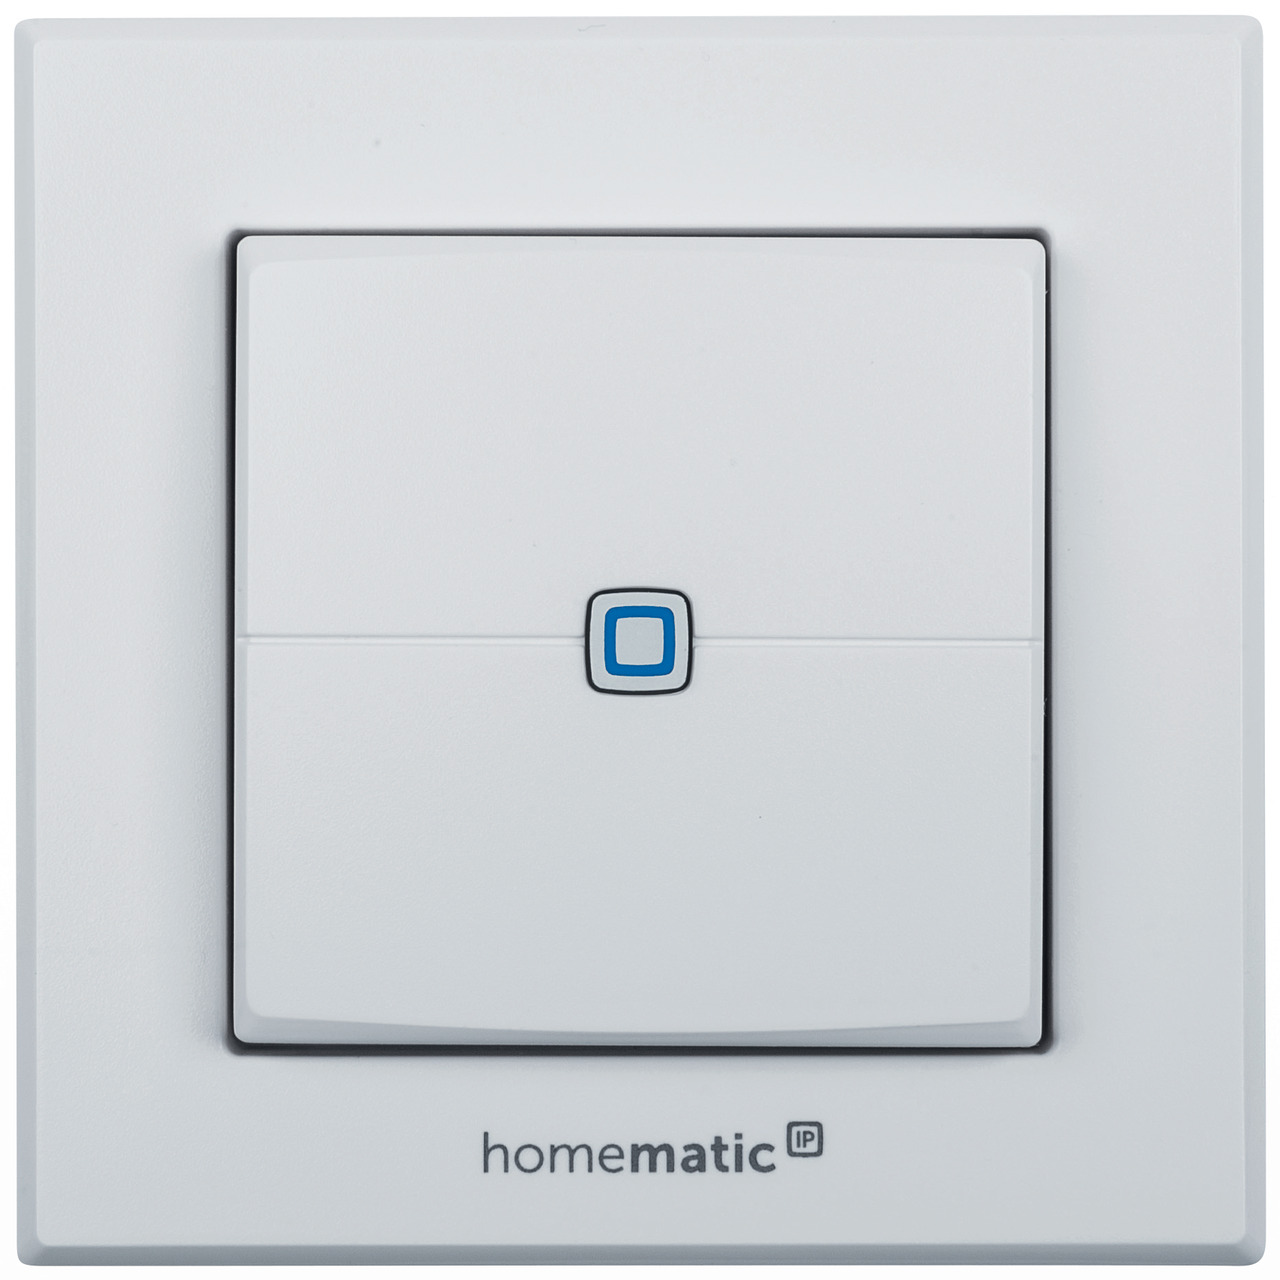 ELV Homematic IP Komplettbausatz Wandtaster HMIP-WRC2- 2-fach für Smart Home - Hausautomation